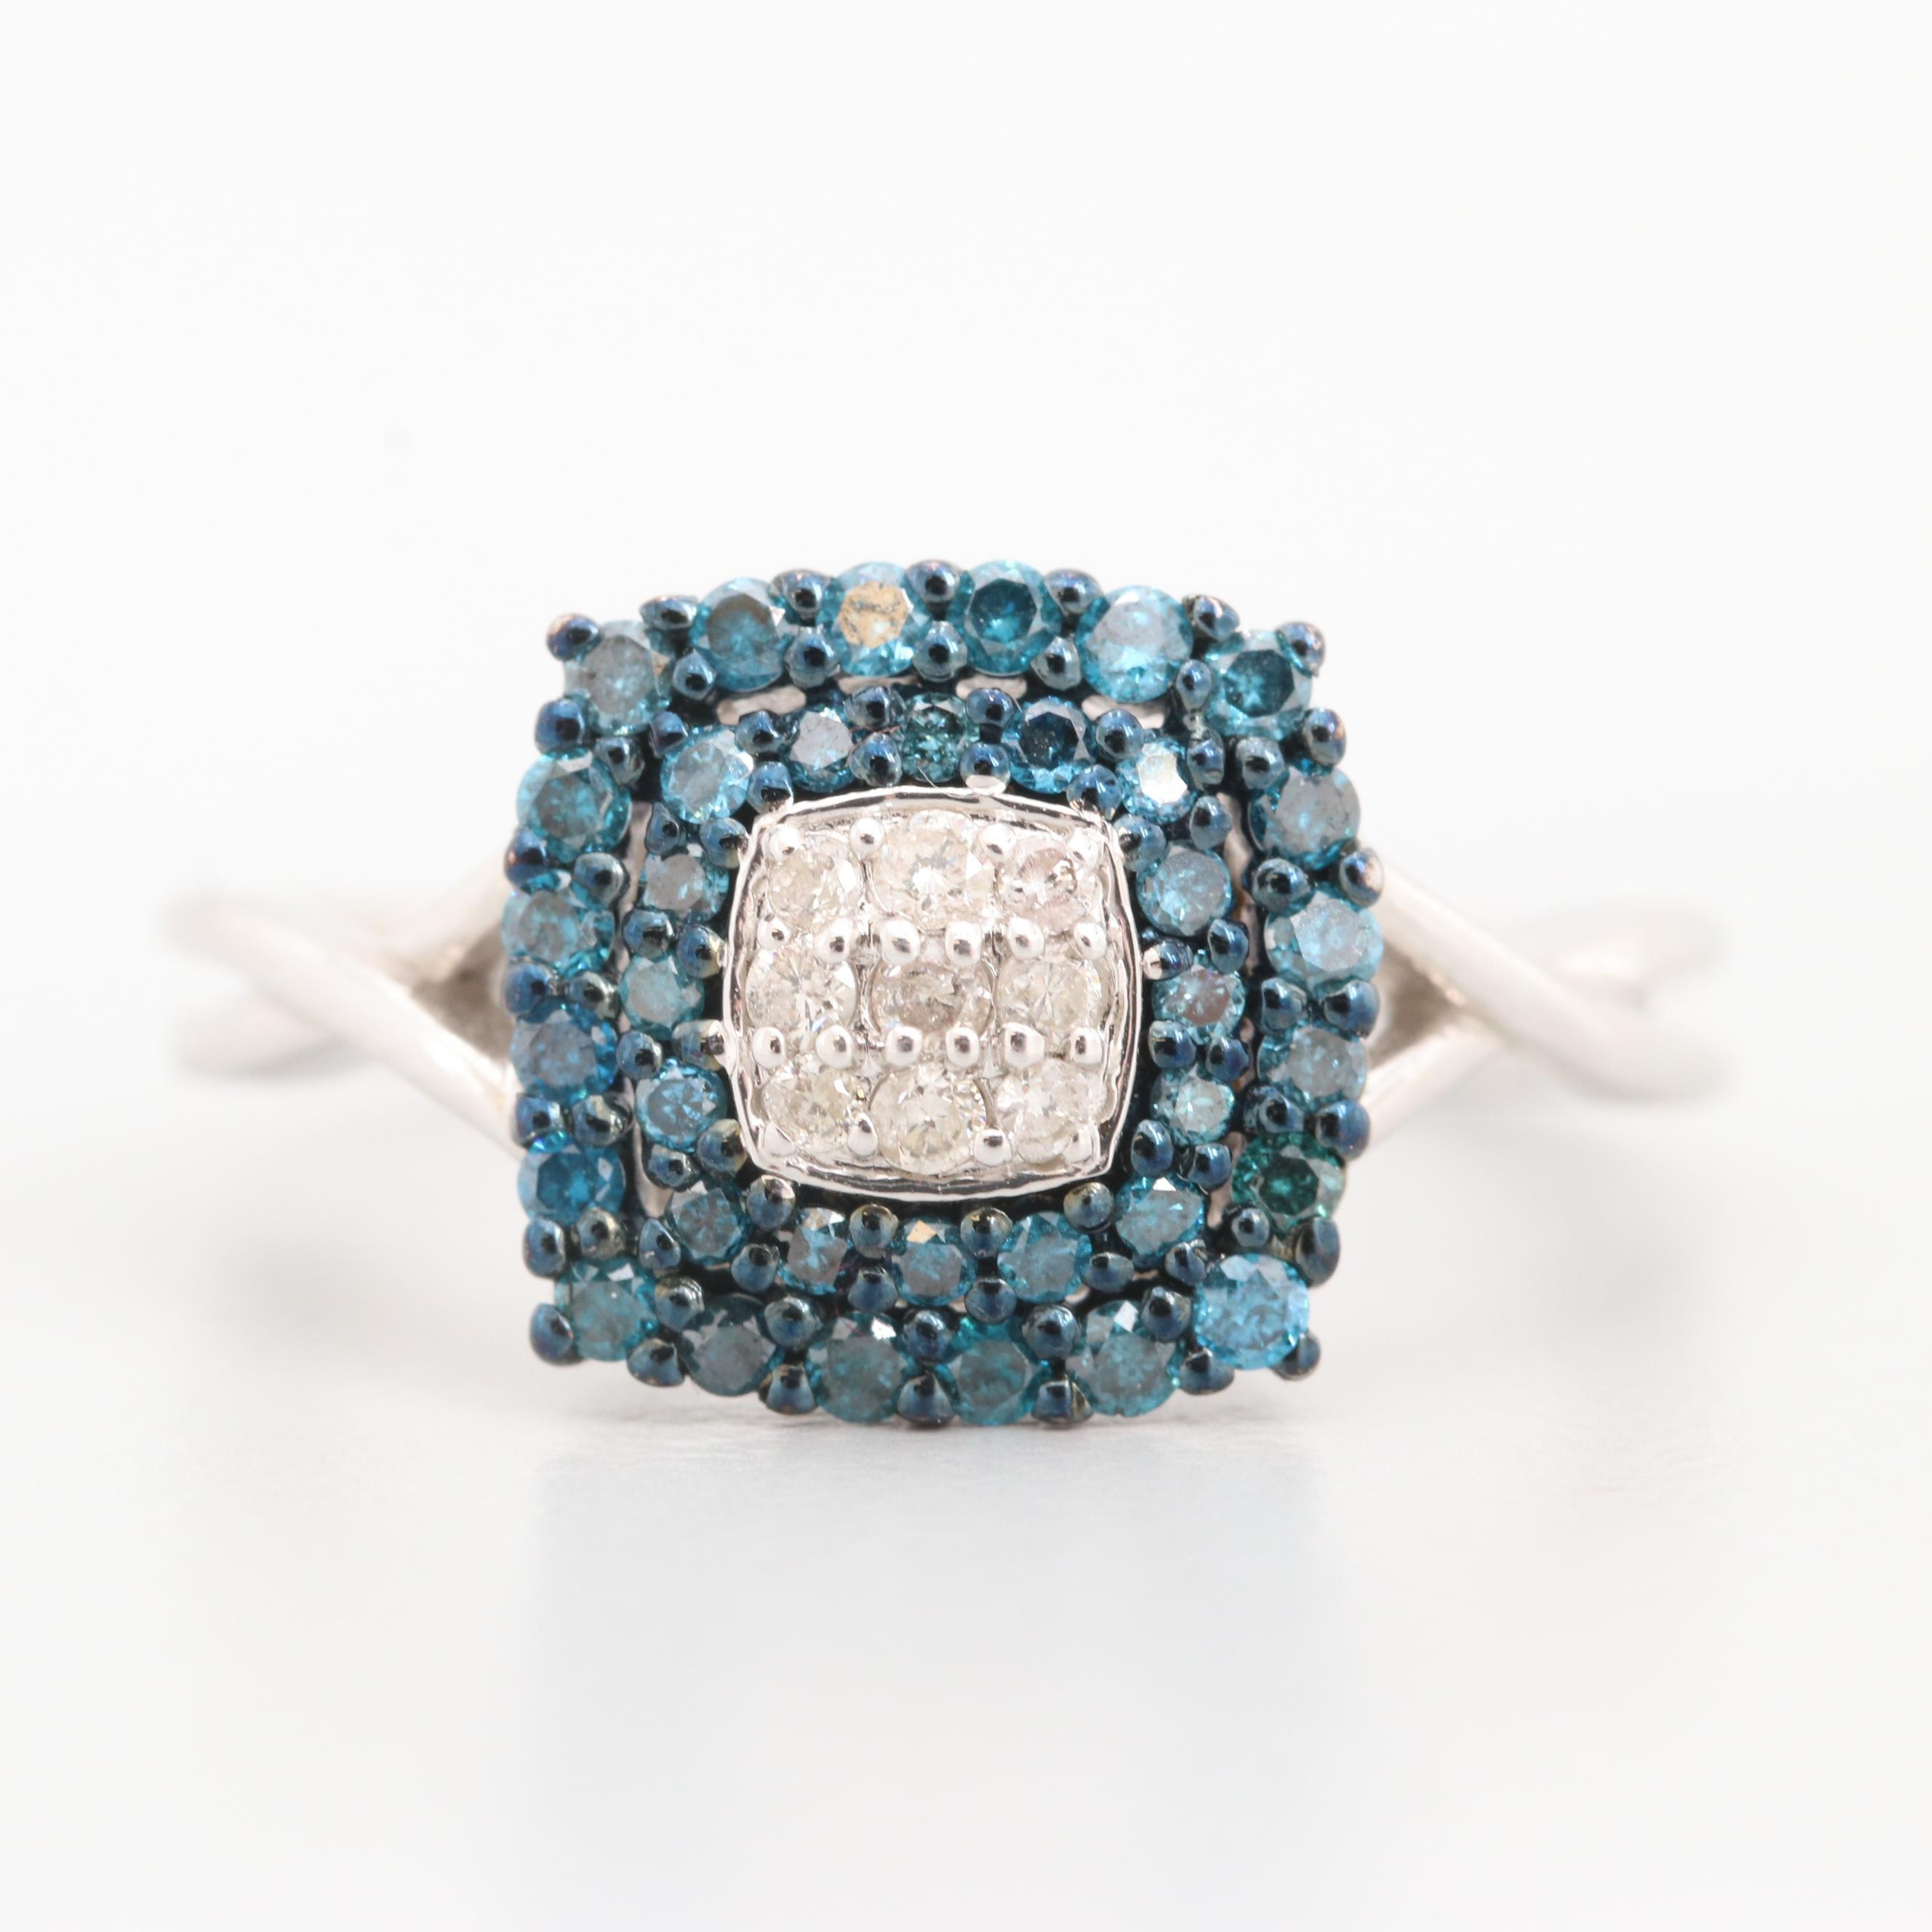 10K White Gold Diamond Ring Featuring Blue Diamonds